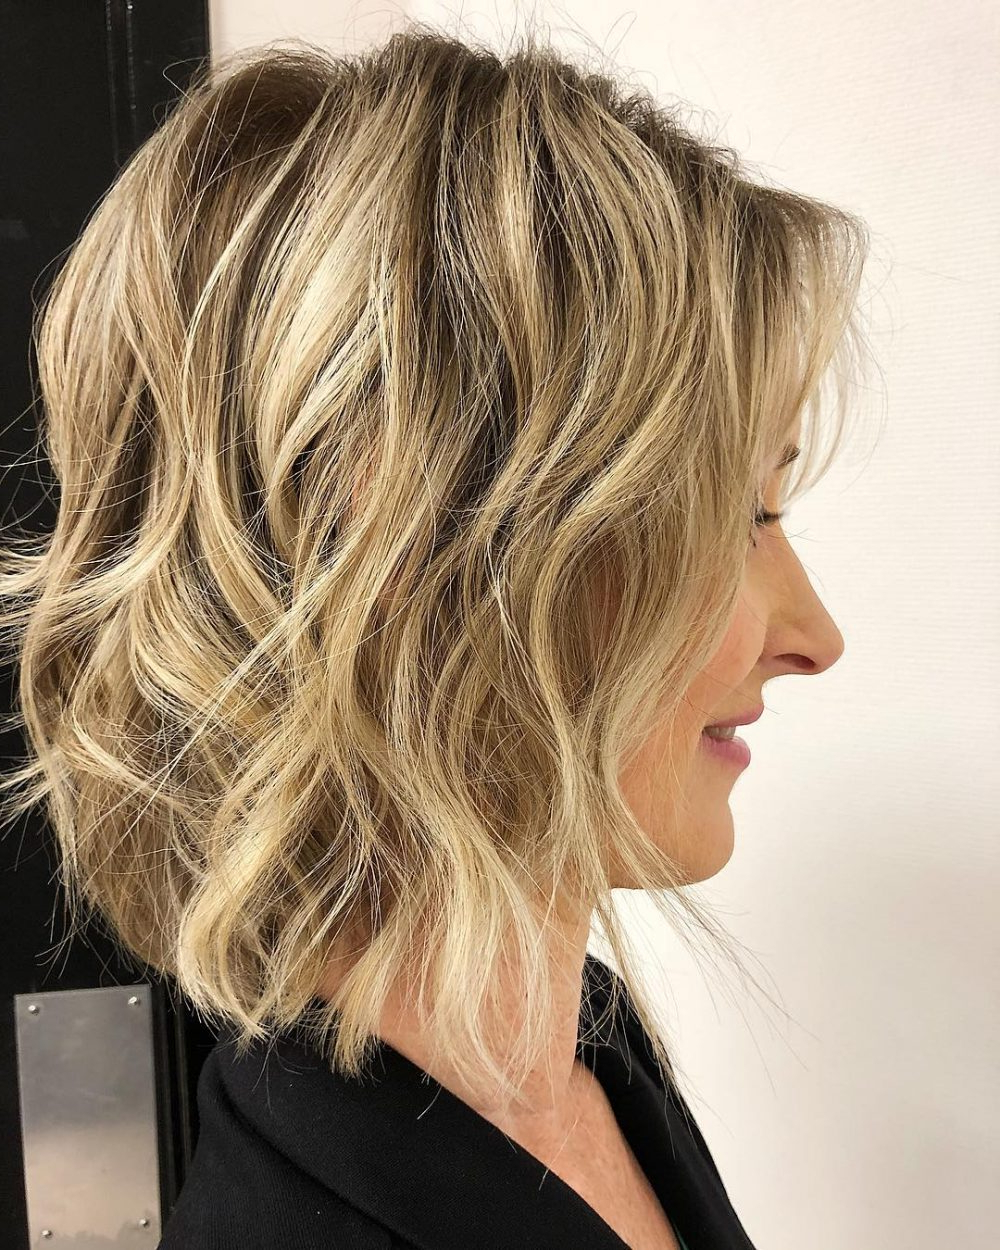 43 Perfect Short Hairstyles For Fine Hair In 2018 Throughout Edgy Pixie Haircuts For Fine Hair (View 13 of 20)